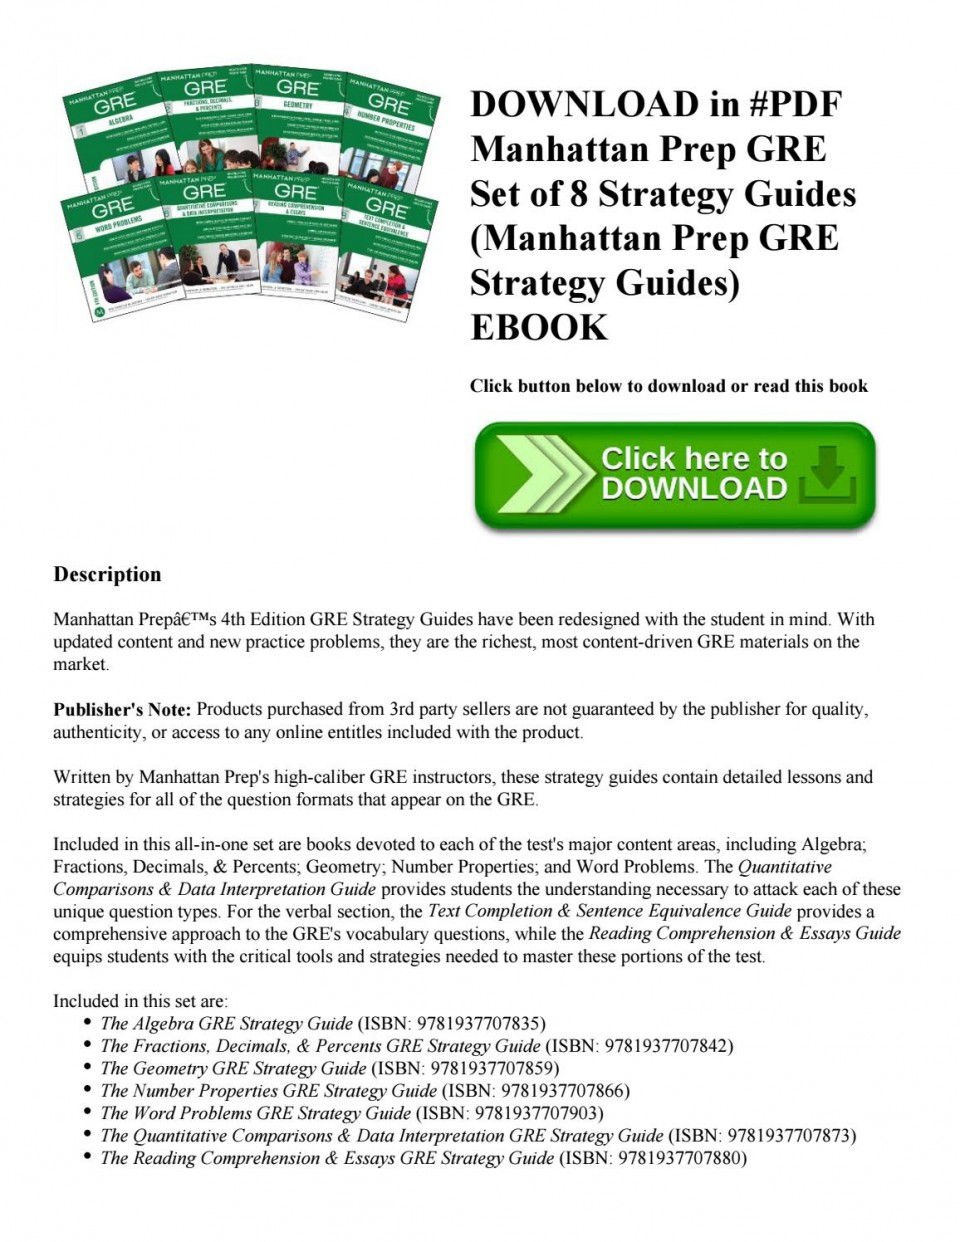 017 Gre Essay Book Pdf Page 1 Incredible Analytical Writing 960